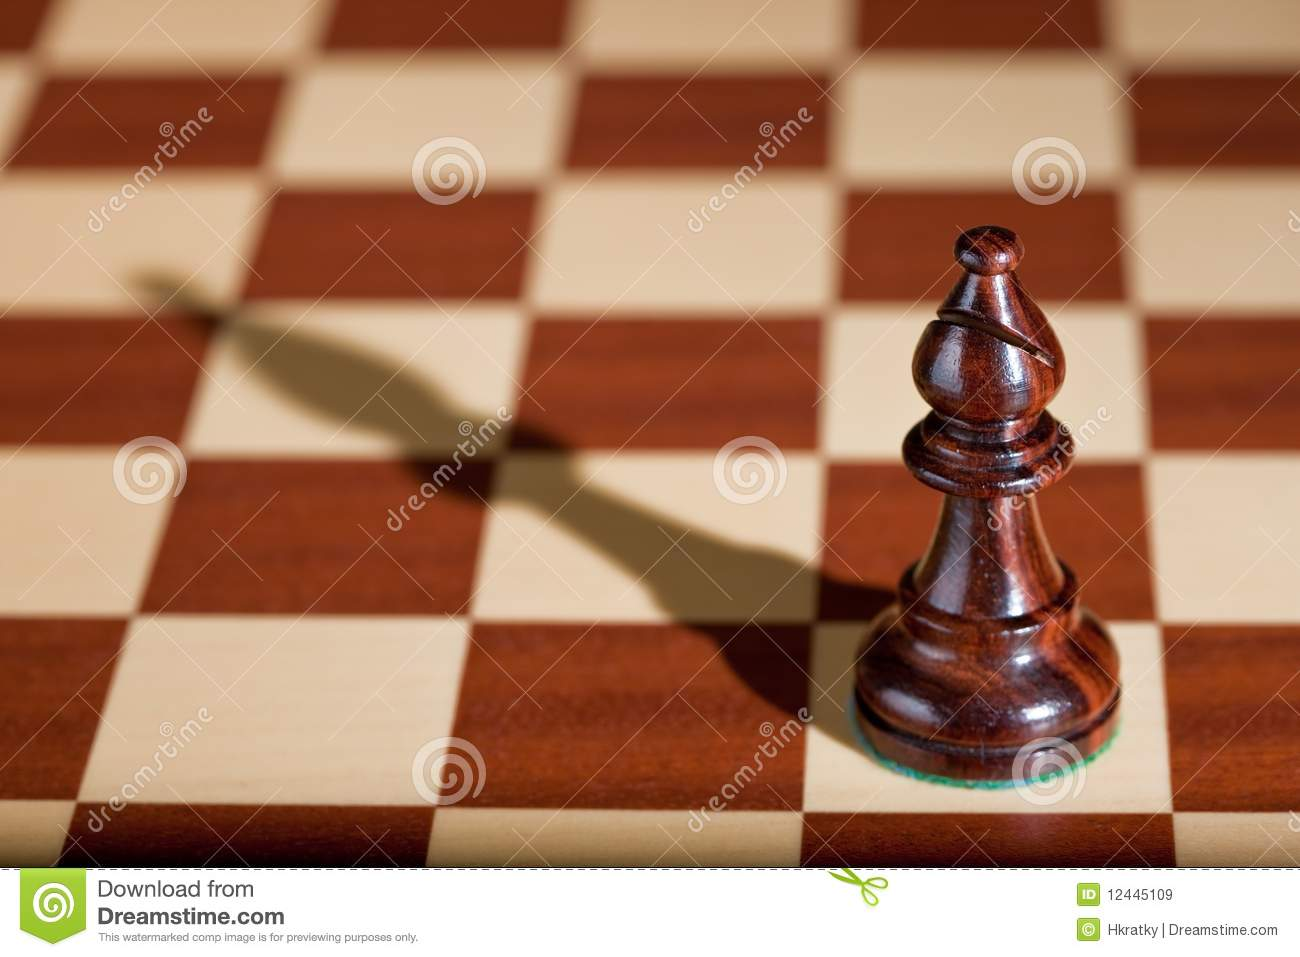 Bishop Chess Piece  Free Stock Images amp Photos  333561